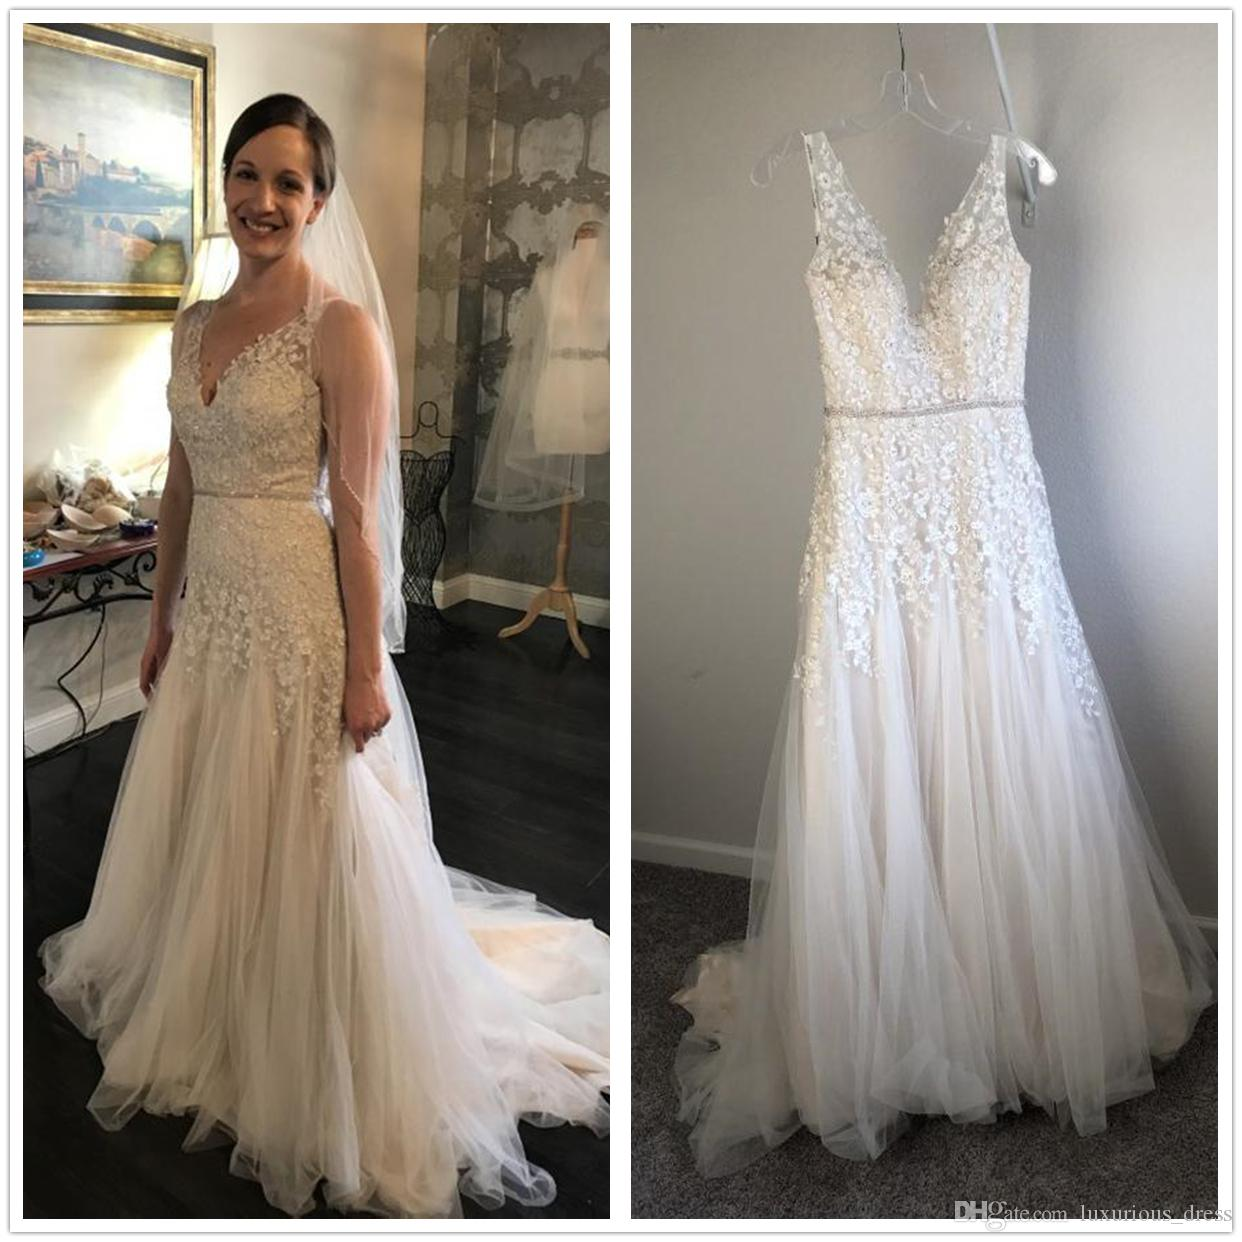 3546252b2 Discount Vintage Bohemian Wedding Dresses Cotton Crochet Lace V Neck Love  Spell Full Length Country Boho A Line Beach Bridal Gown Real Pictures  Wedding ...